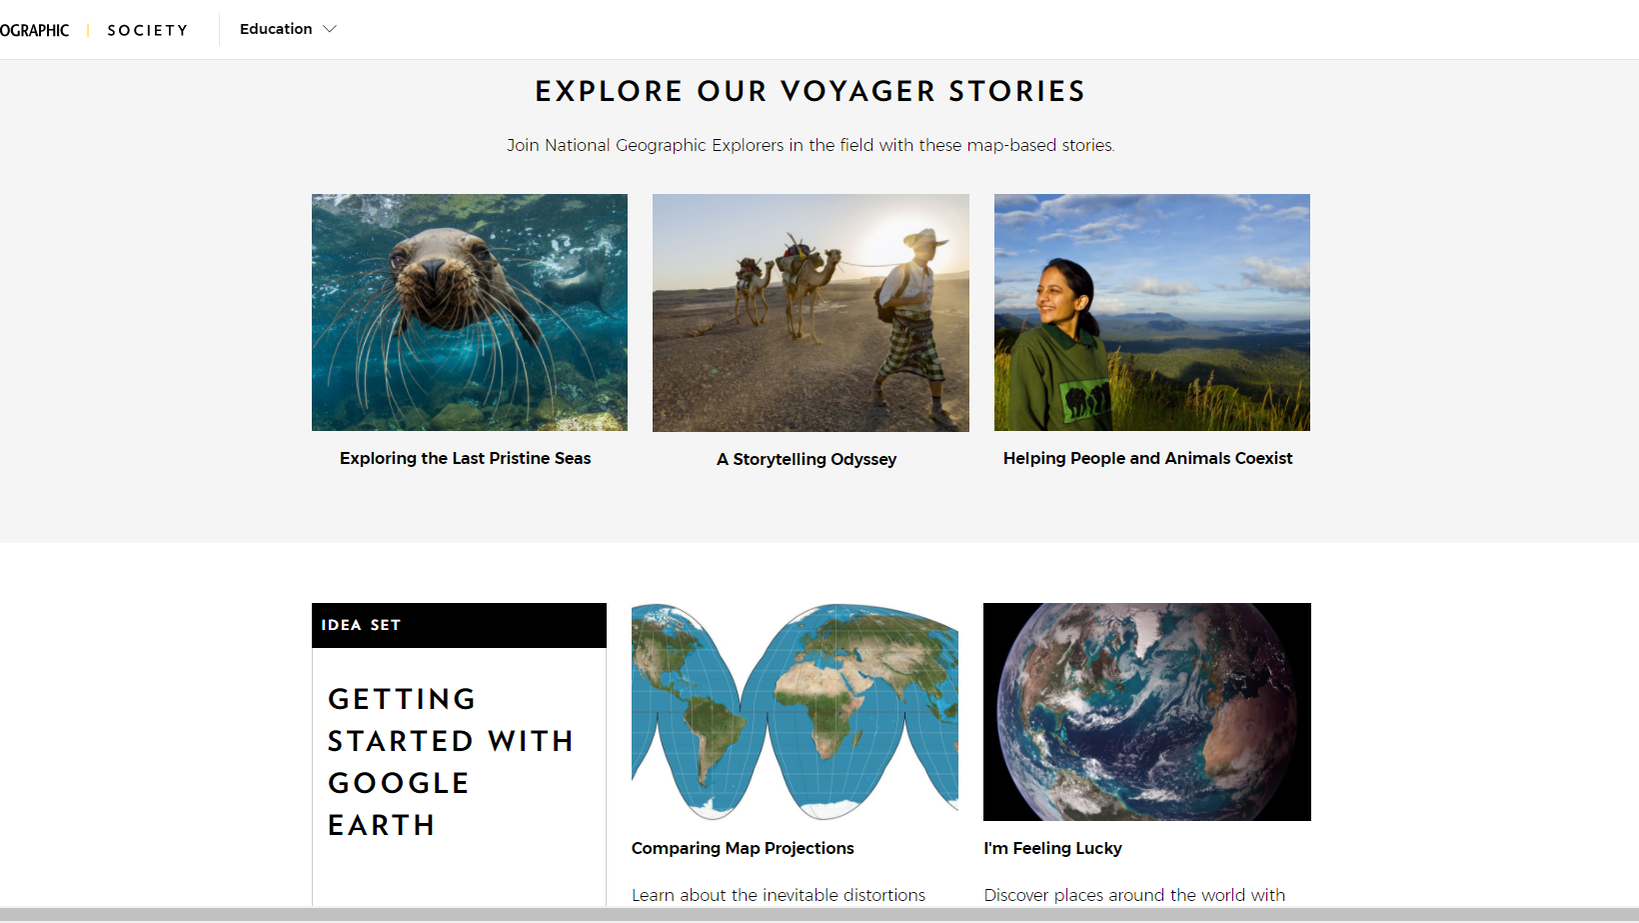 EarthVoyager_NationalGeographic3.png